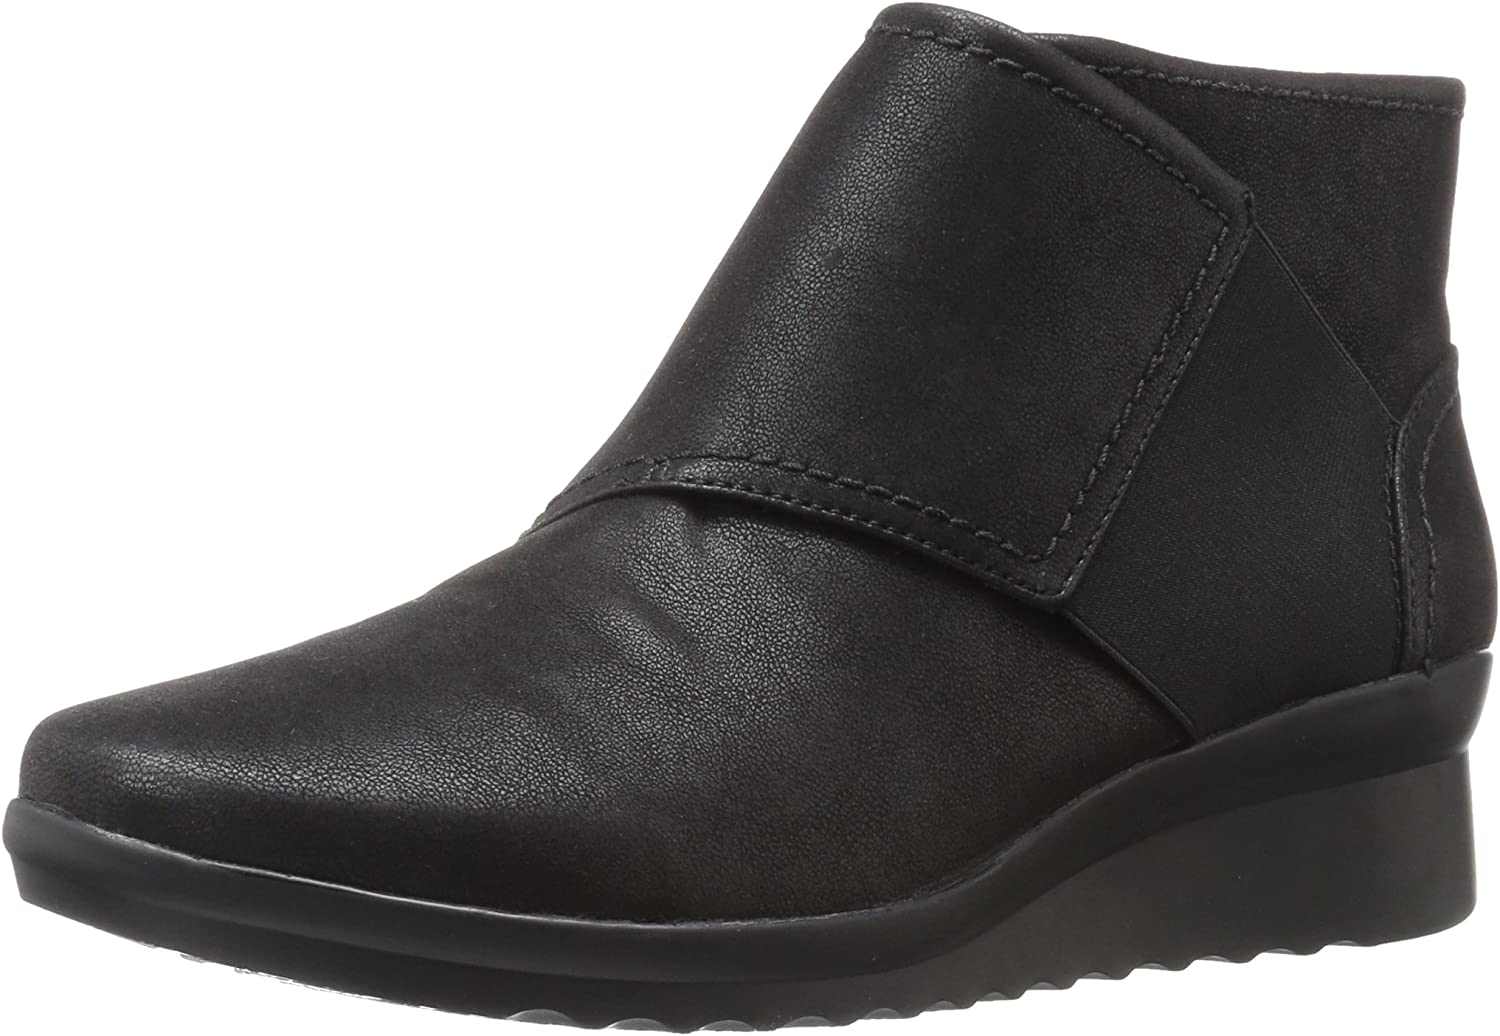 Clarks Womens Cloudstepper Caddell Rush Ankle Boot